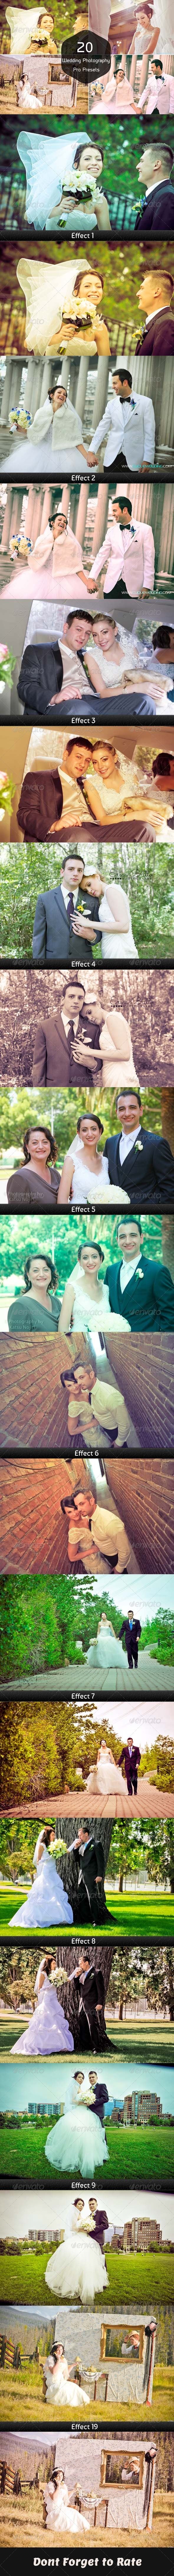 GraphicRiver 20 Wedding Photography Pro Lightroom Presets 7003498